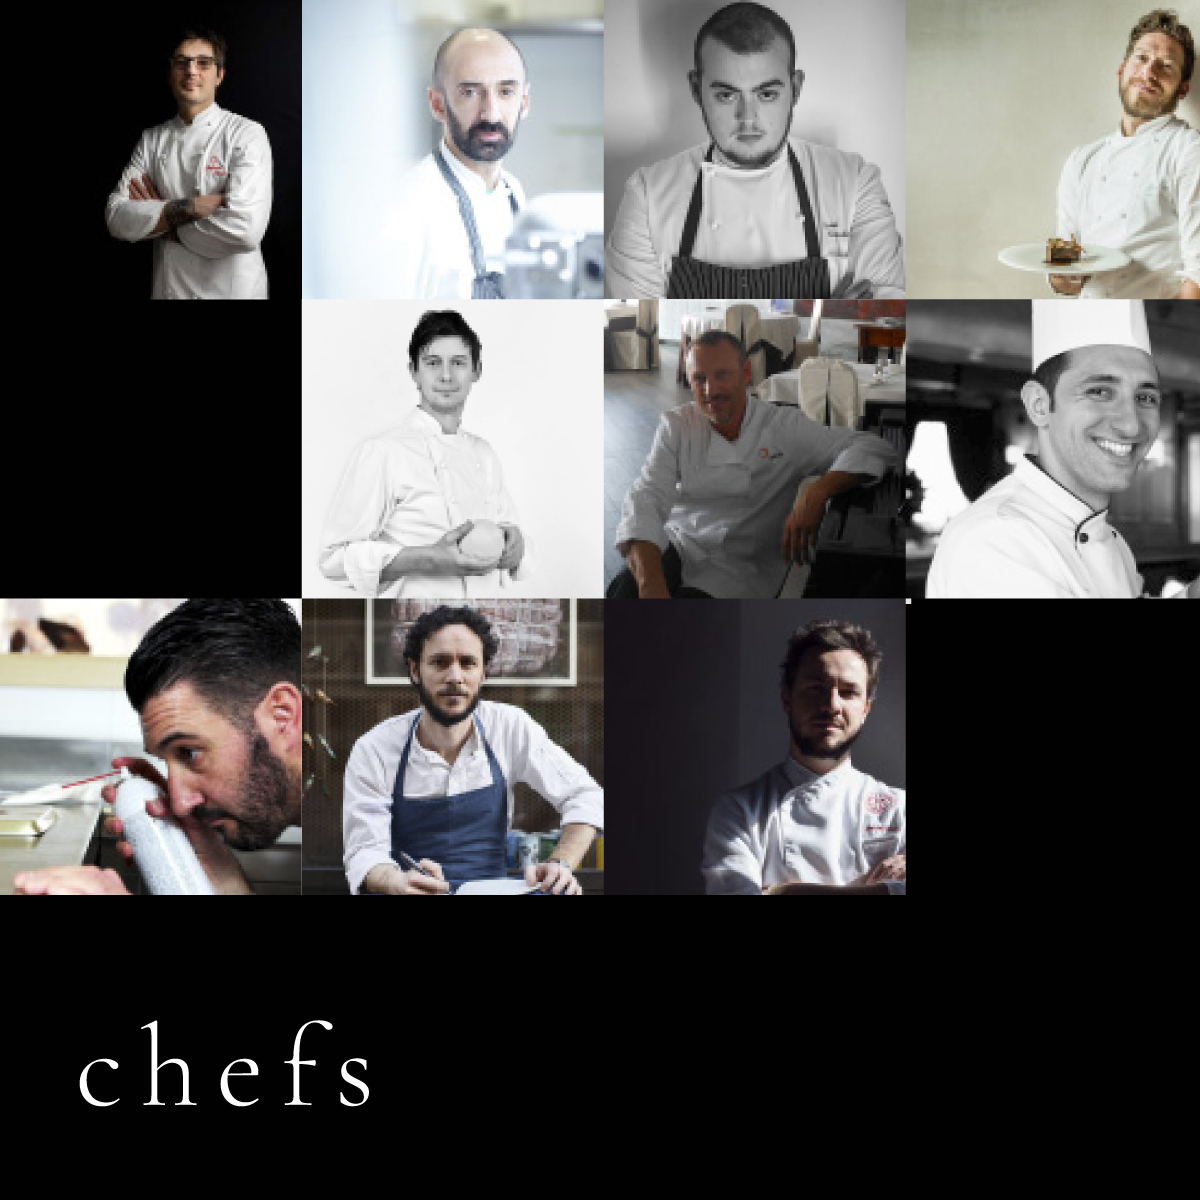 Chefs design and food